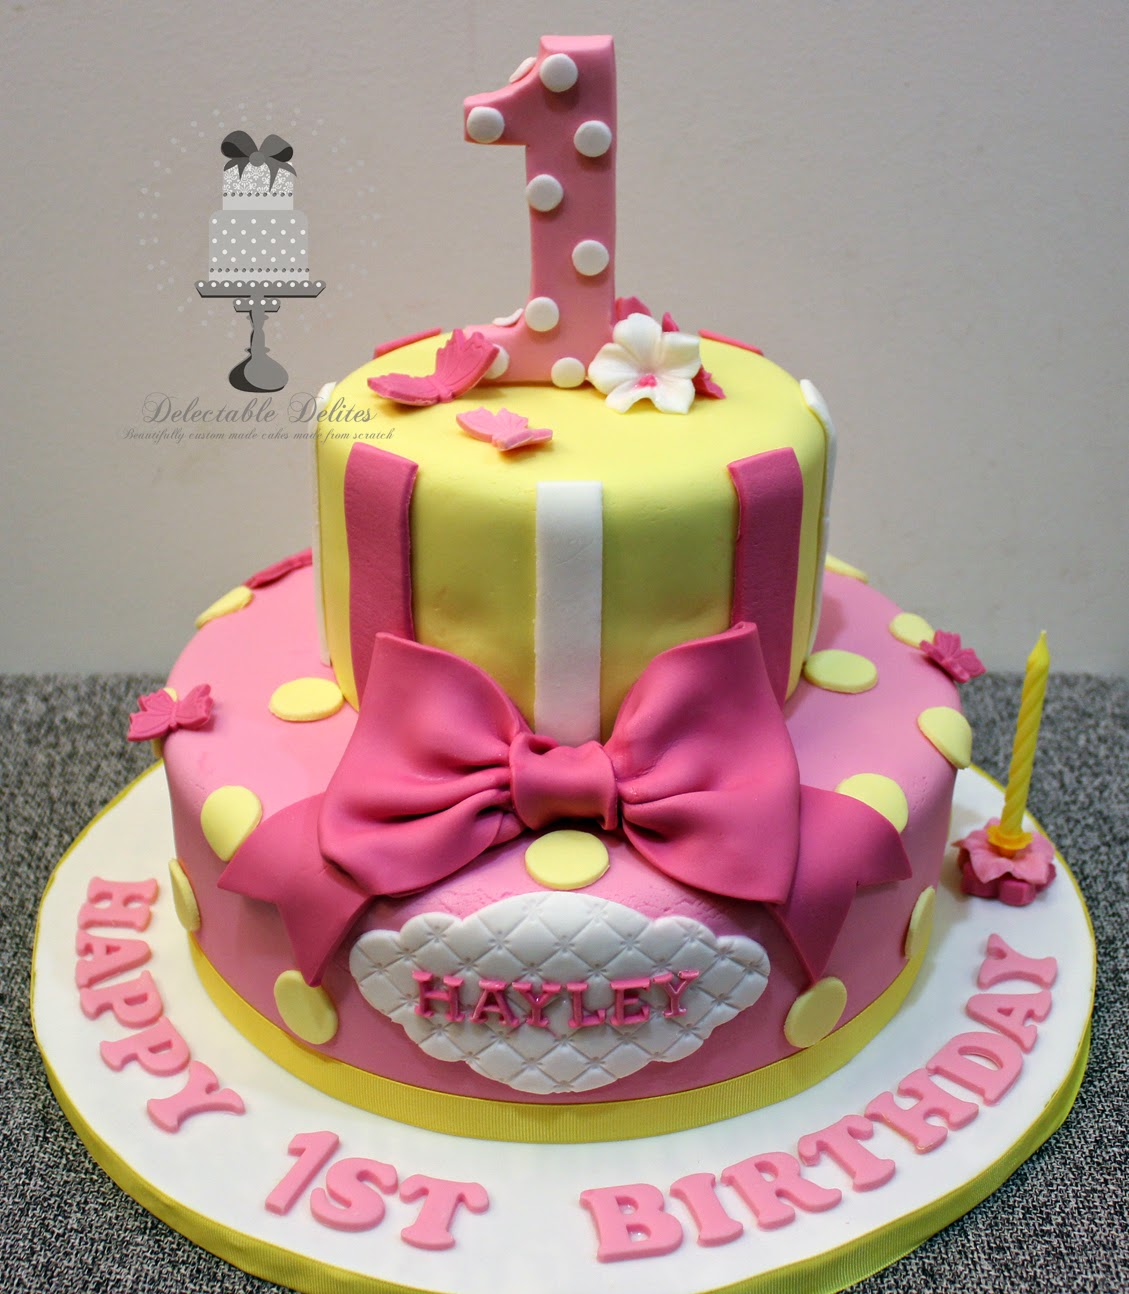 Delectable Delites Pink Yellow Theme Cake For Hayleys 1st Birthday